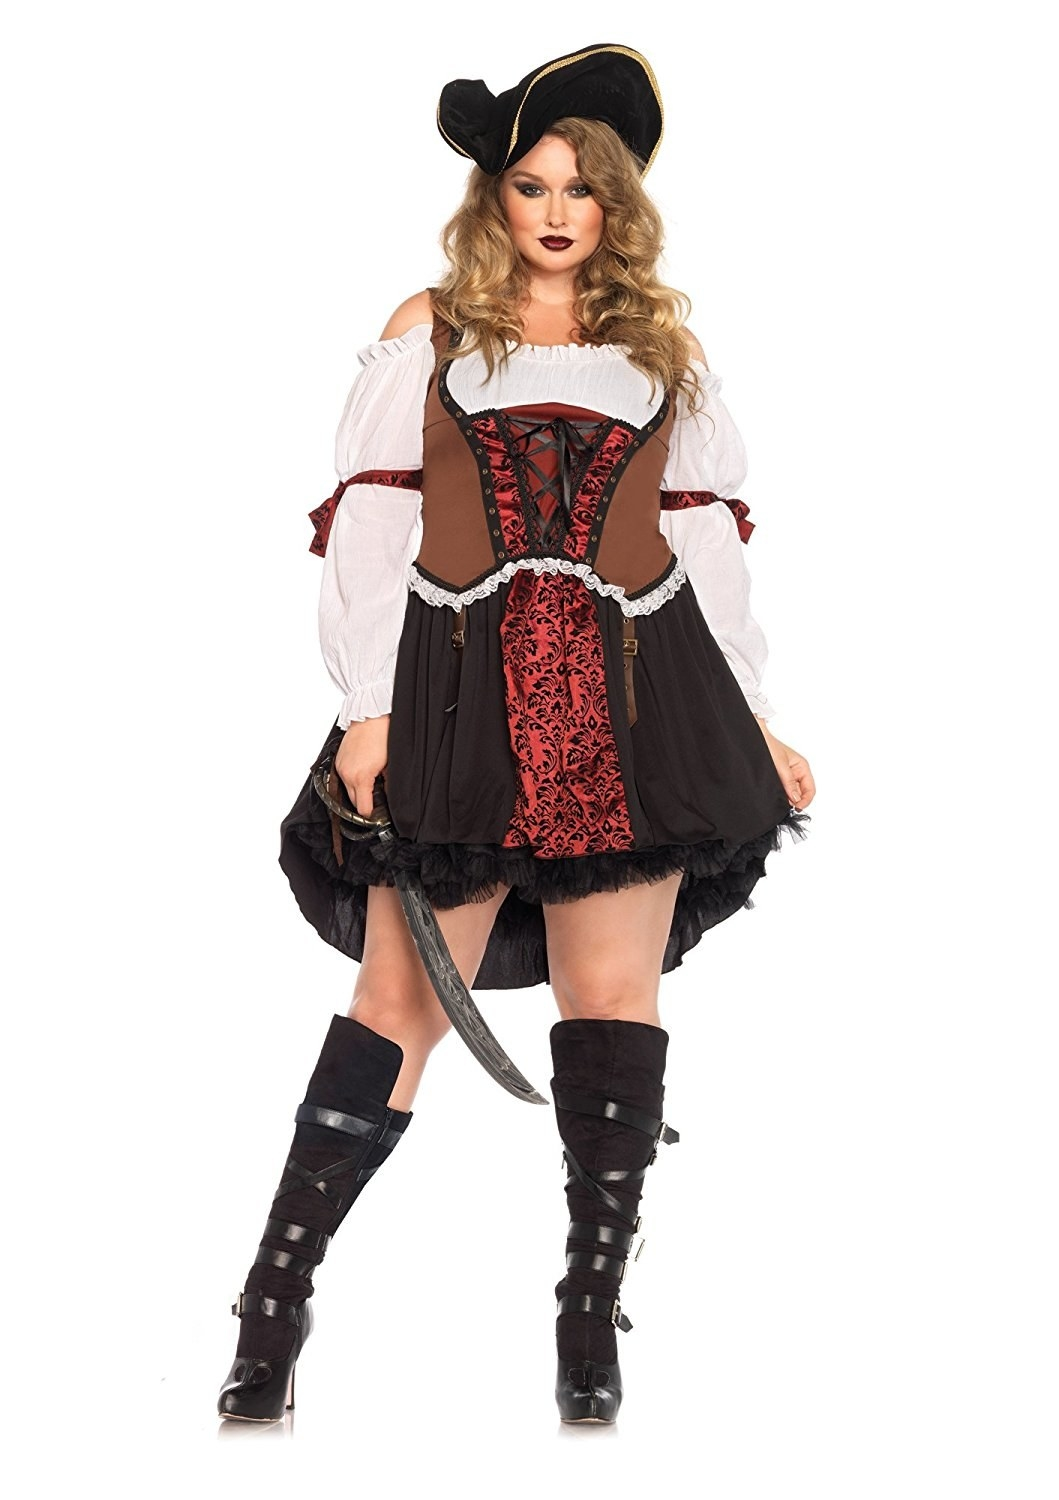 A pirate costume thatu0027ll have you feeling like youu0027re in the Caribbean. (READ on vacation and not at work.)  sc 1 st  BuzzFeed & 28 Halloween Costumes From Amazon Youu0027ll Actually Want To Wear